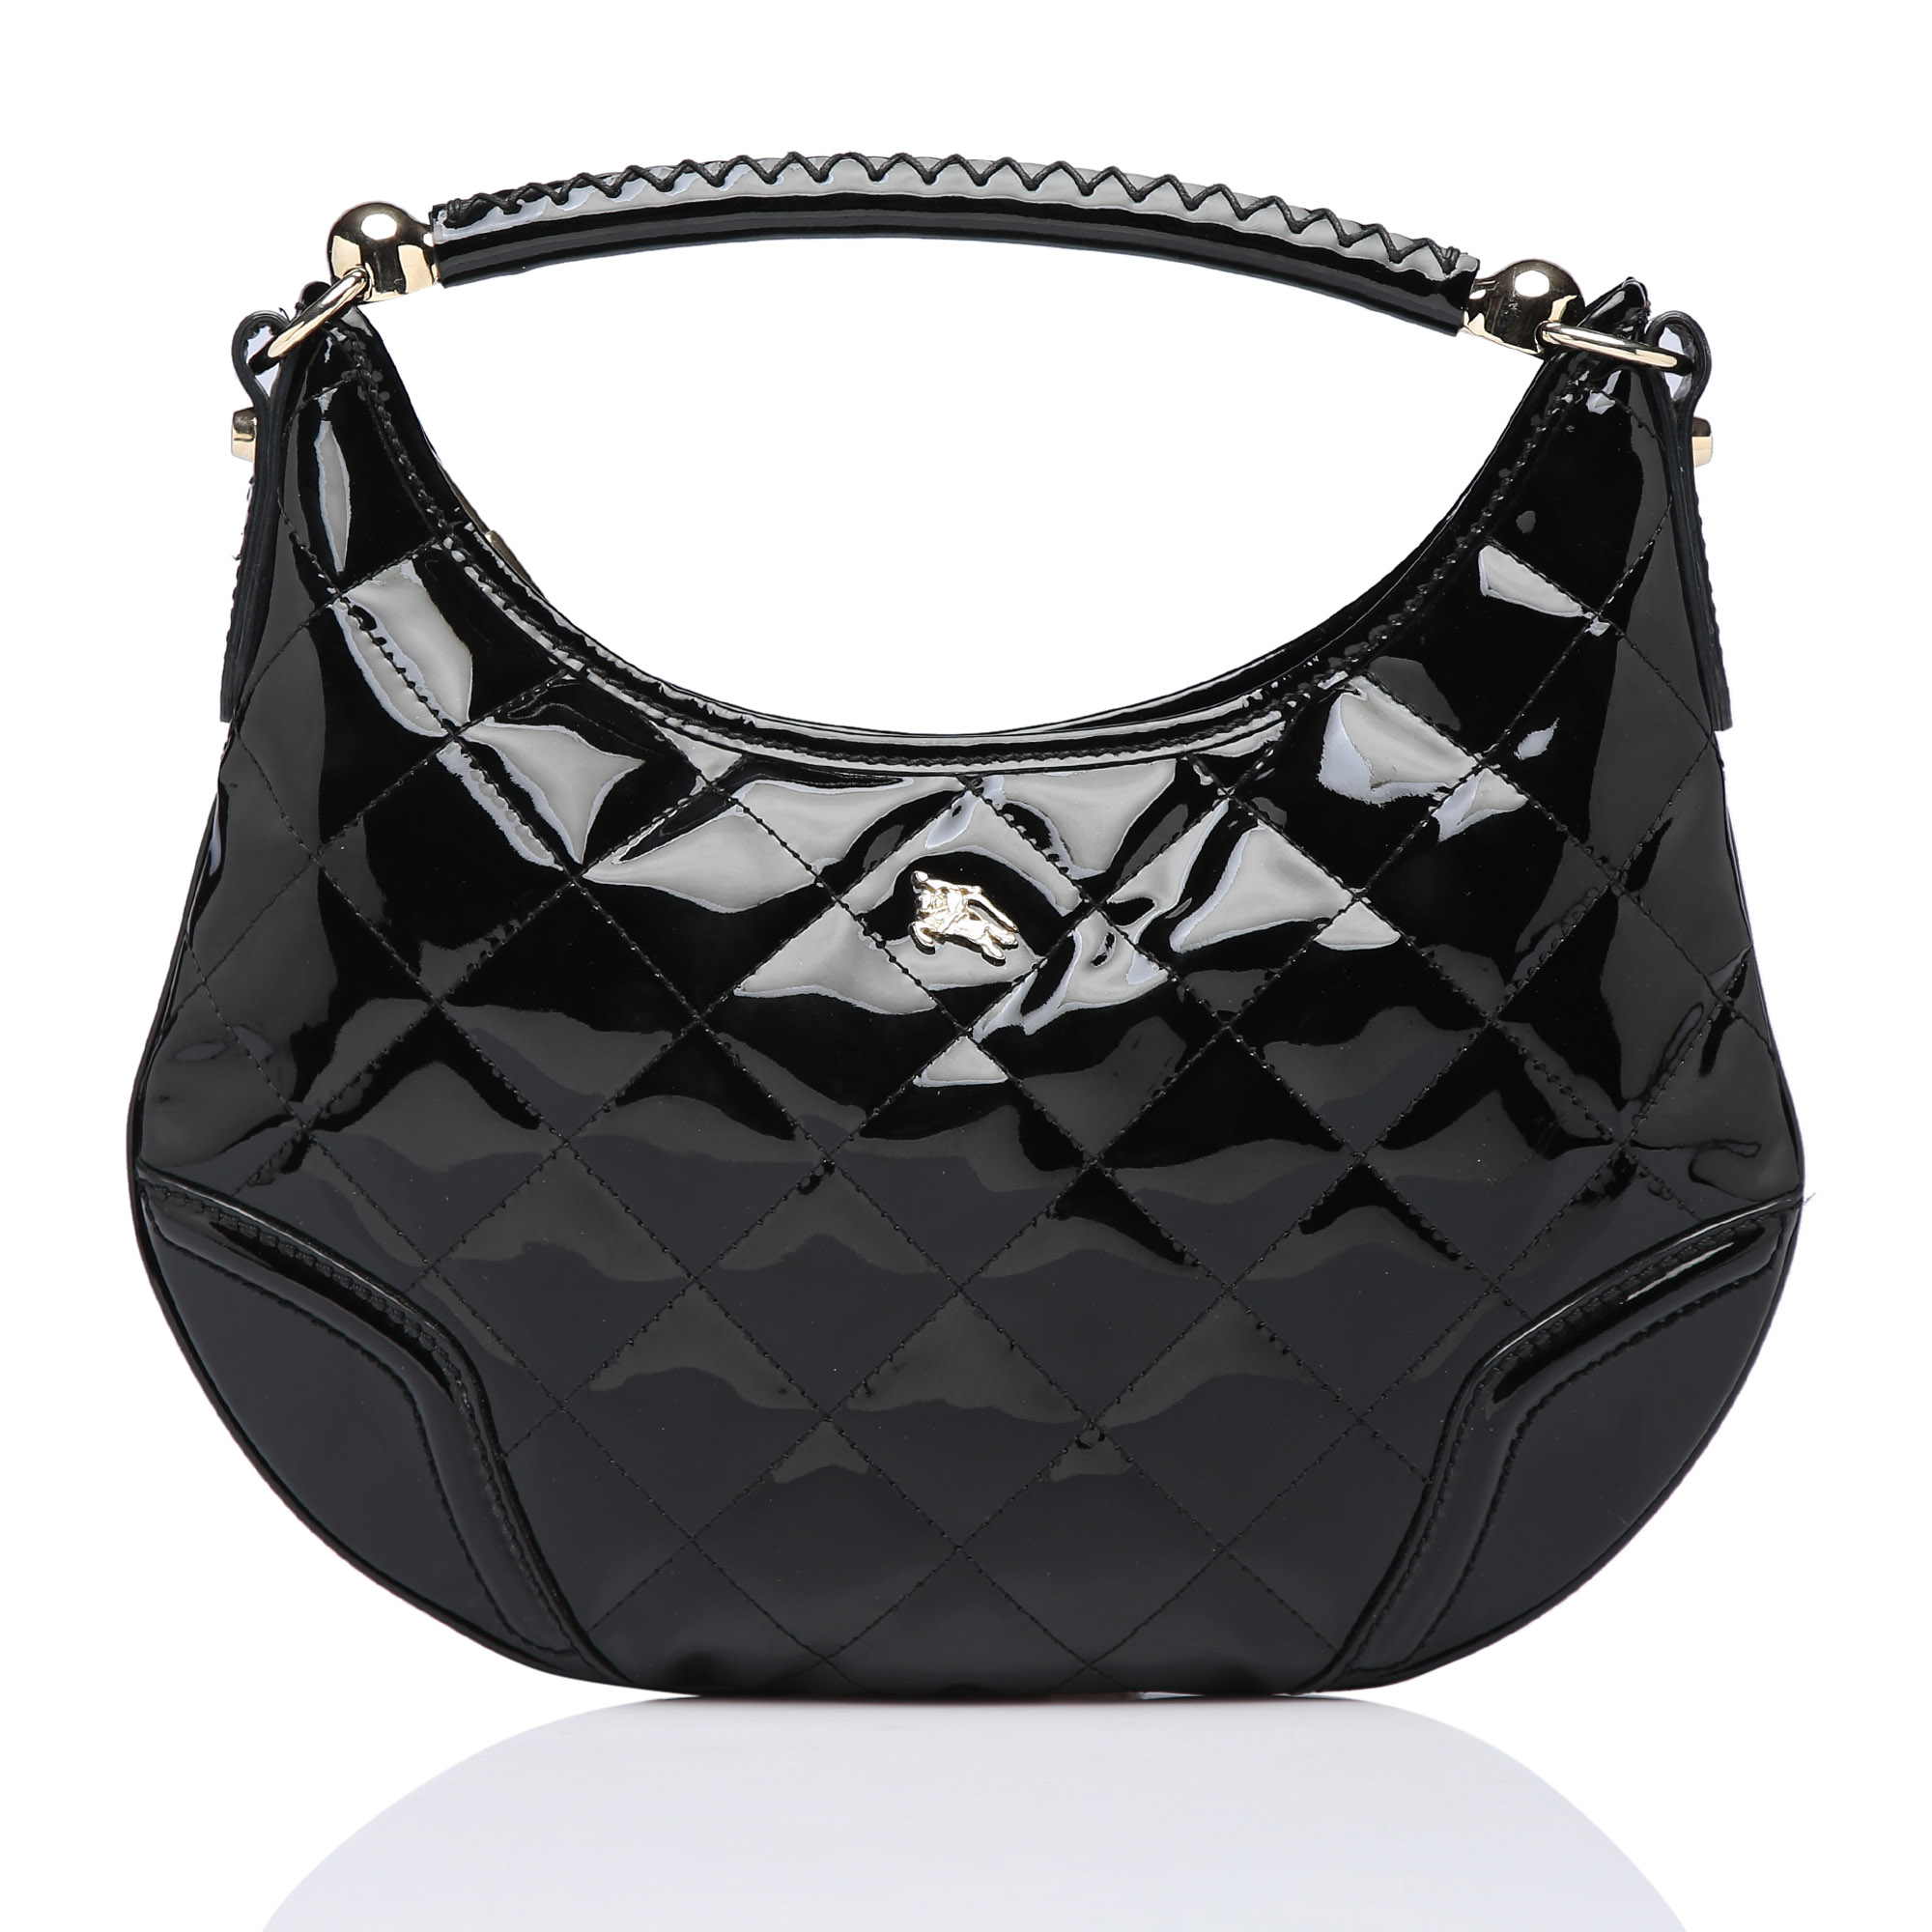 39310948f56b Burberry Black Patent Quilted Hoxton Hobo - My Luxury Bargain